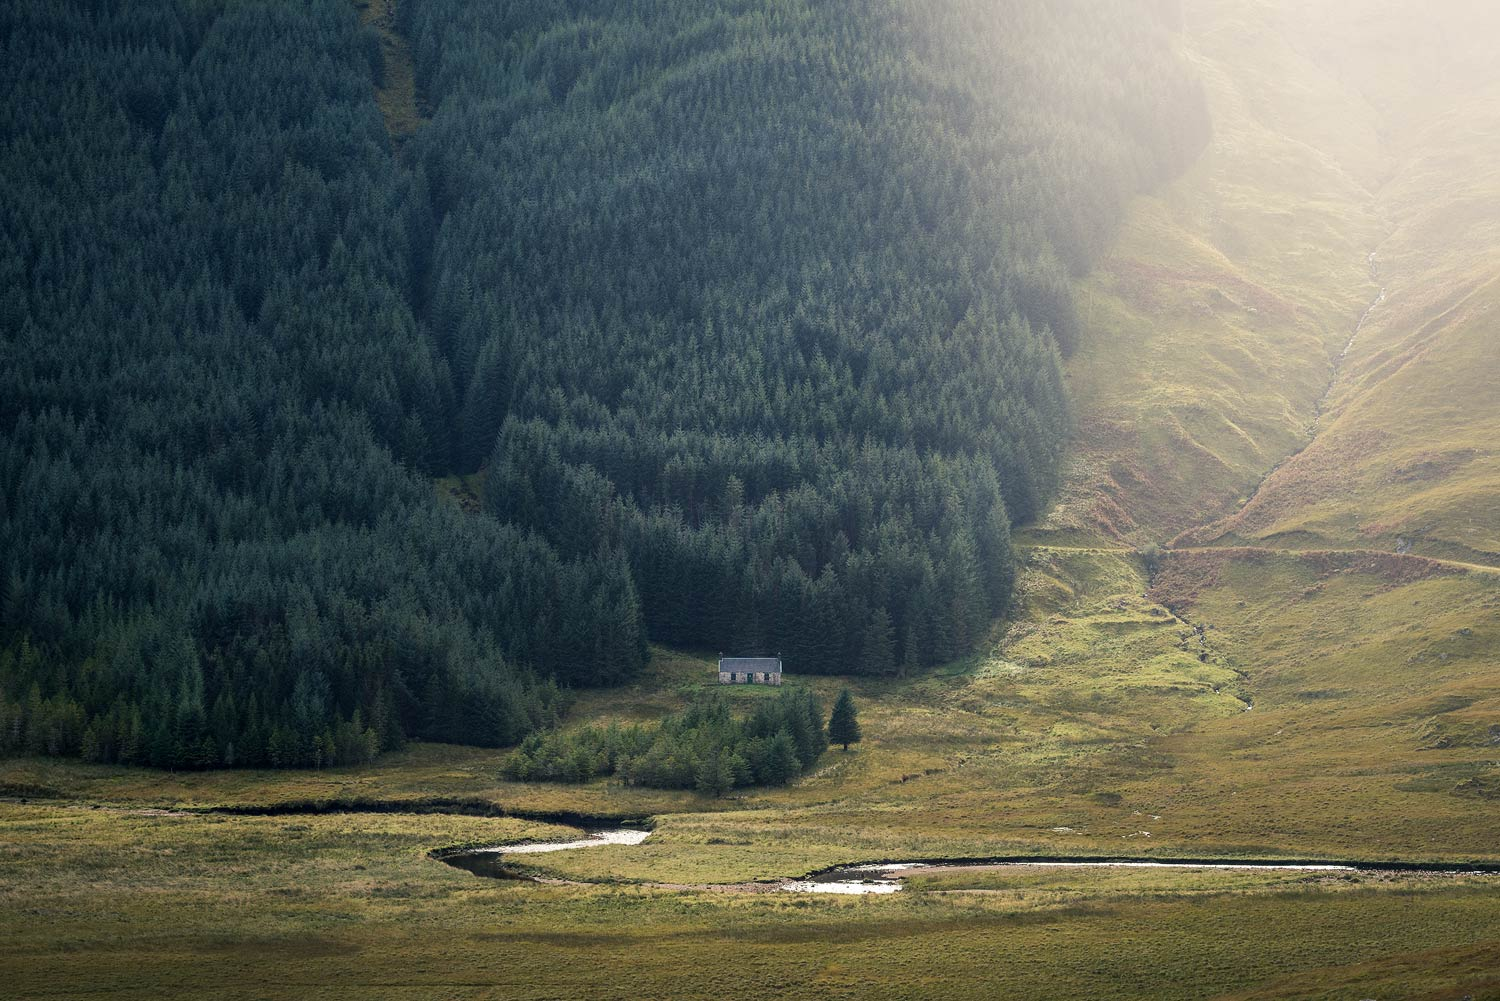 A'Chuil Bothy next to forest